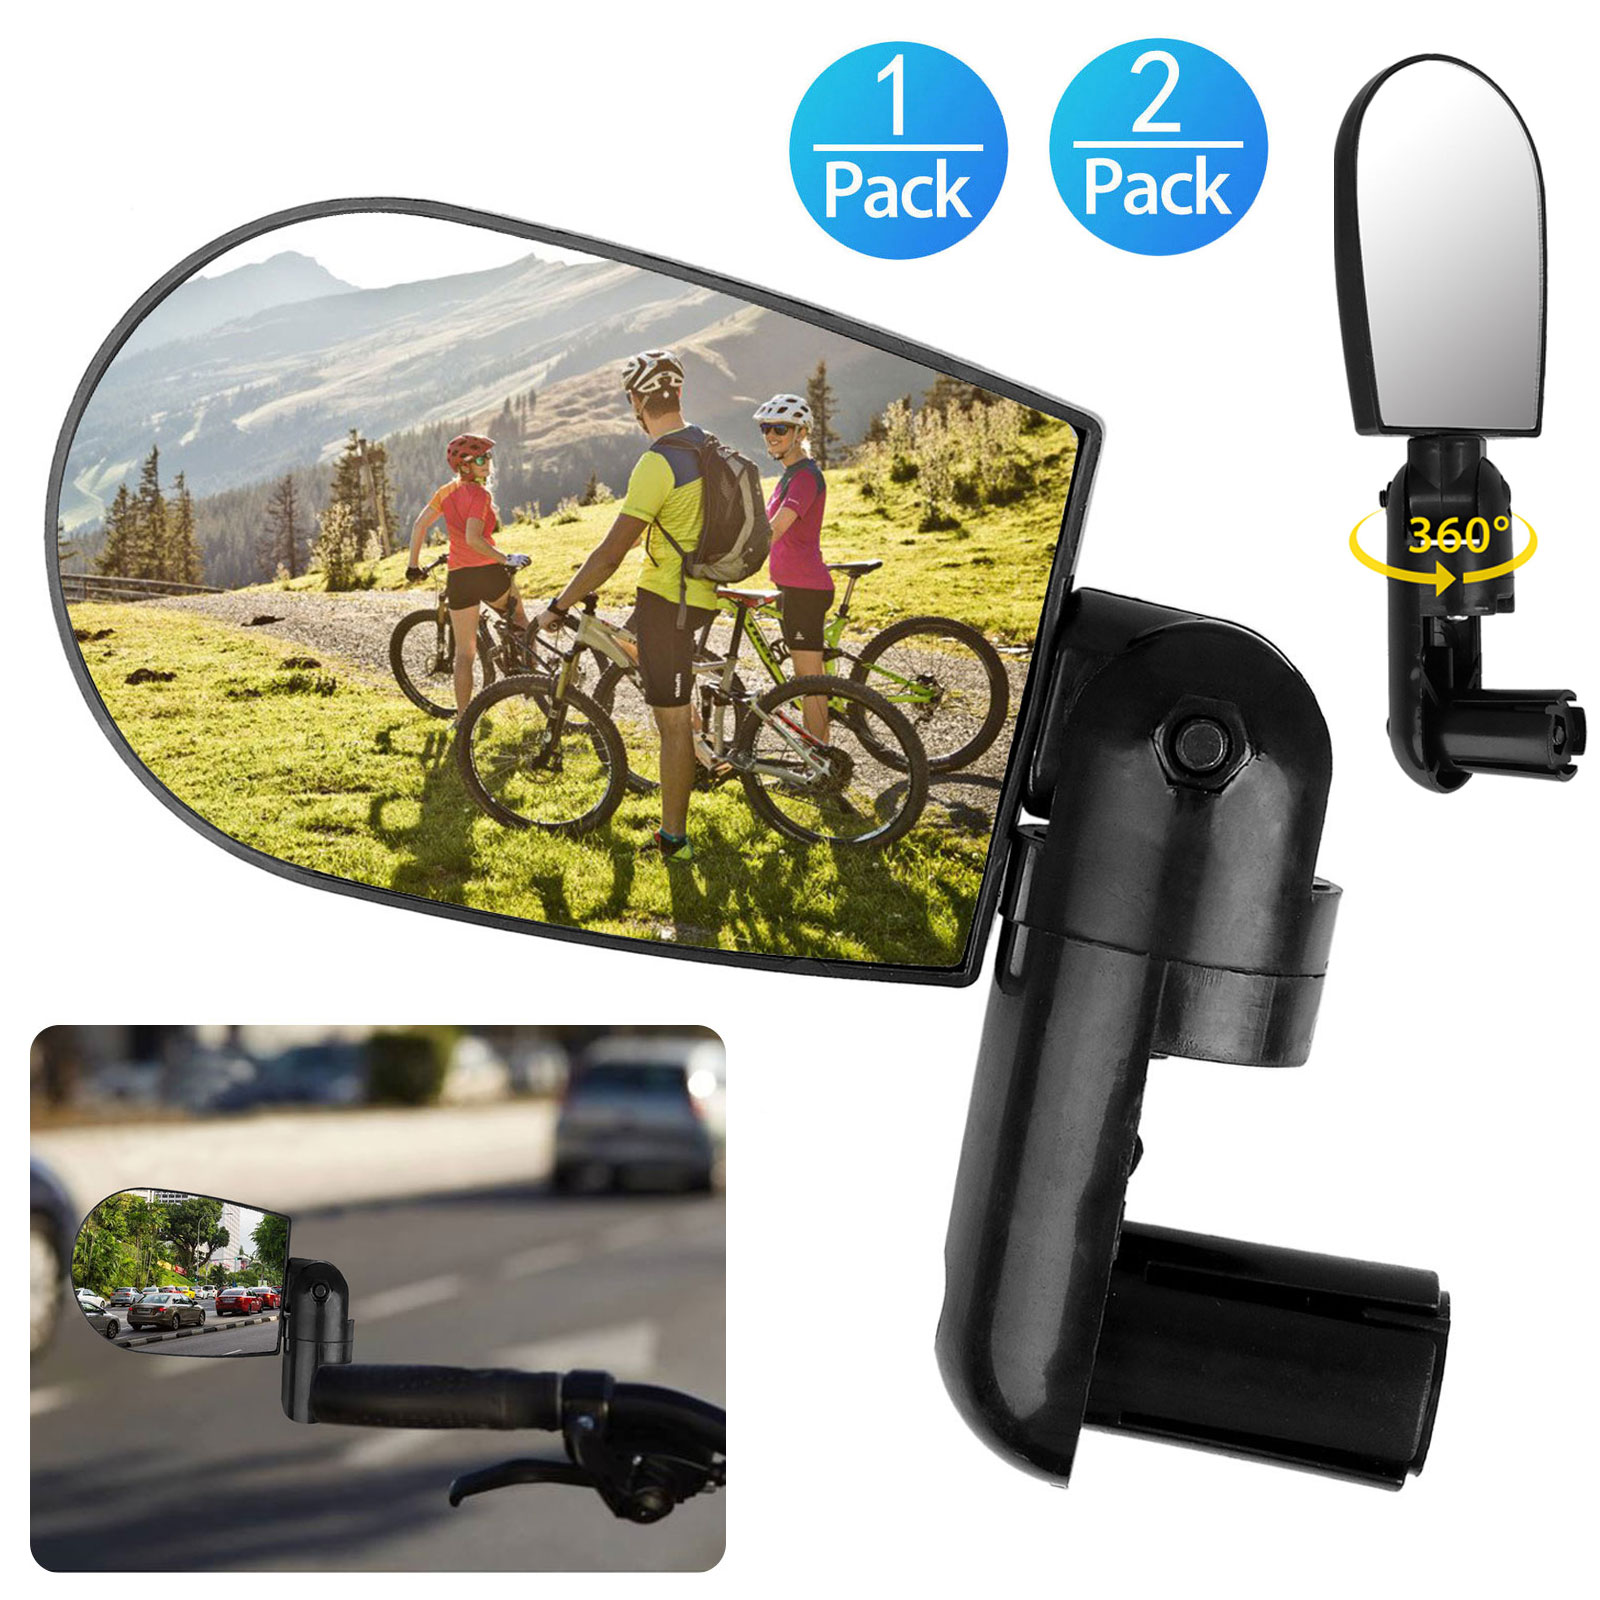 Rotatable-Handlebar-Rearview-Mirror-for-Bike-Bicycle-Cycling-Rear-View-Mirror thumbnail 11